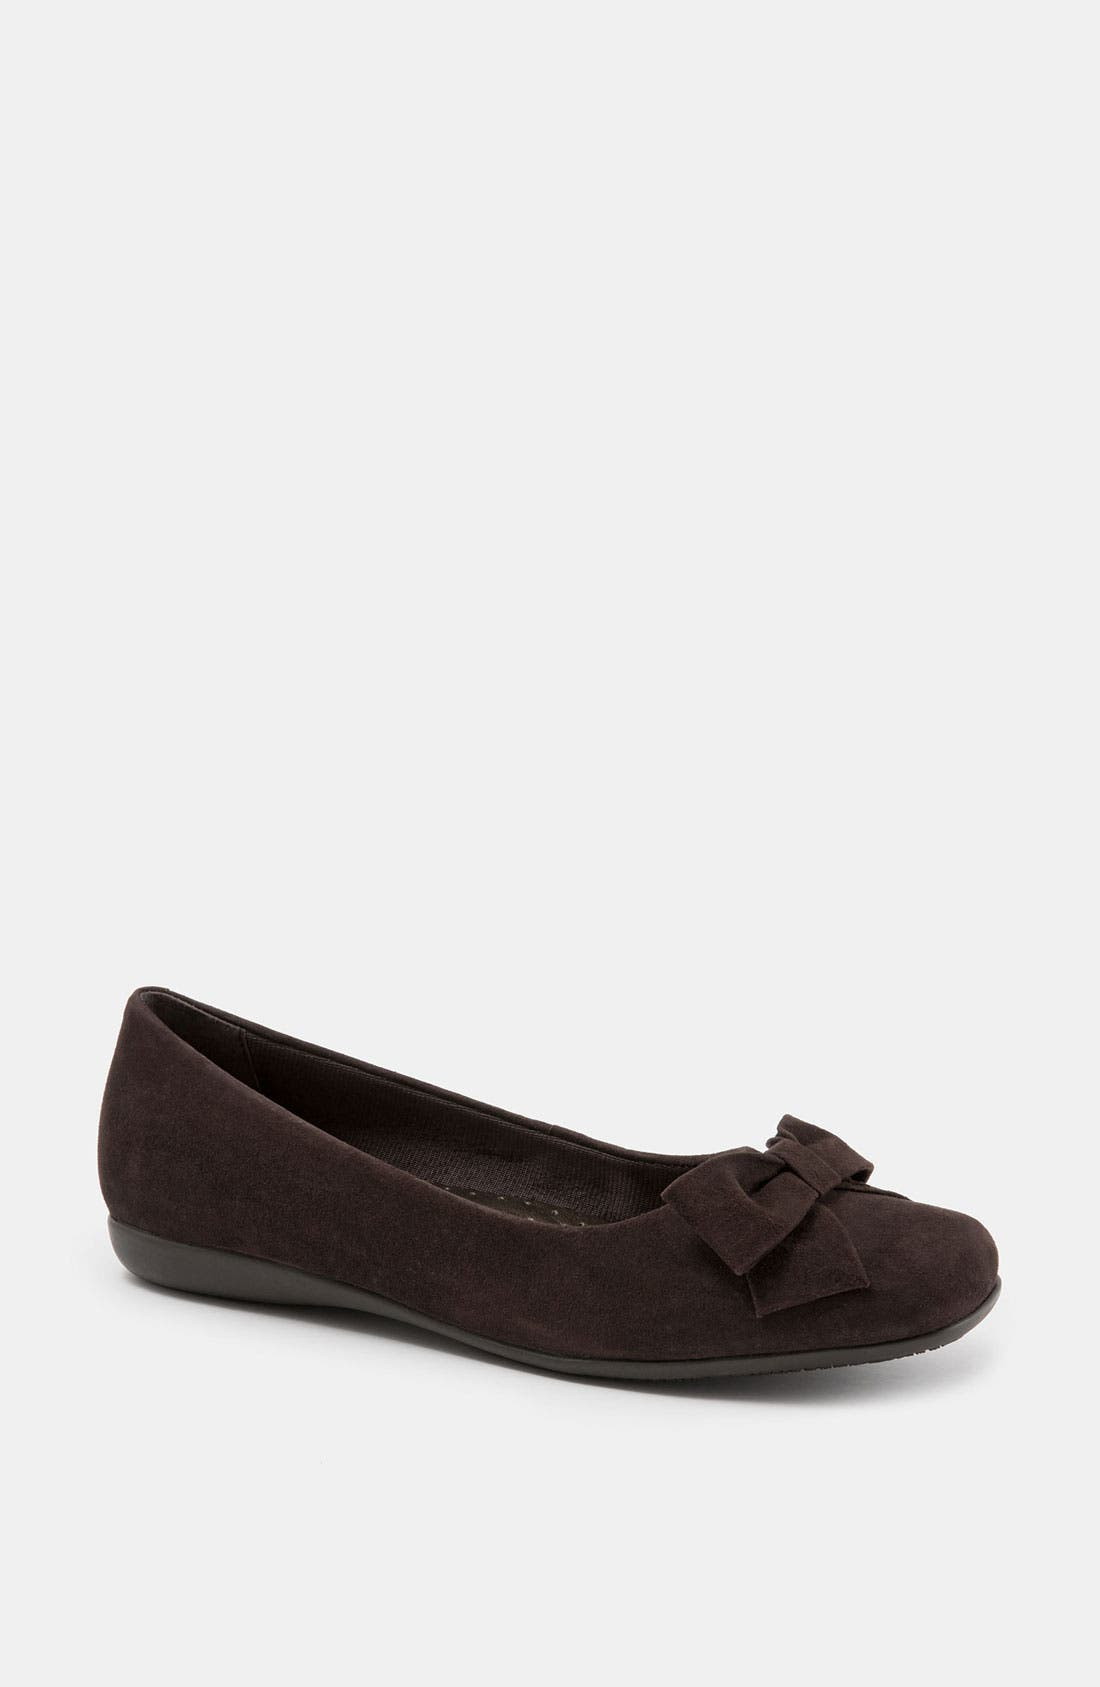 Main Image - Trotters 'Sonia' Flat